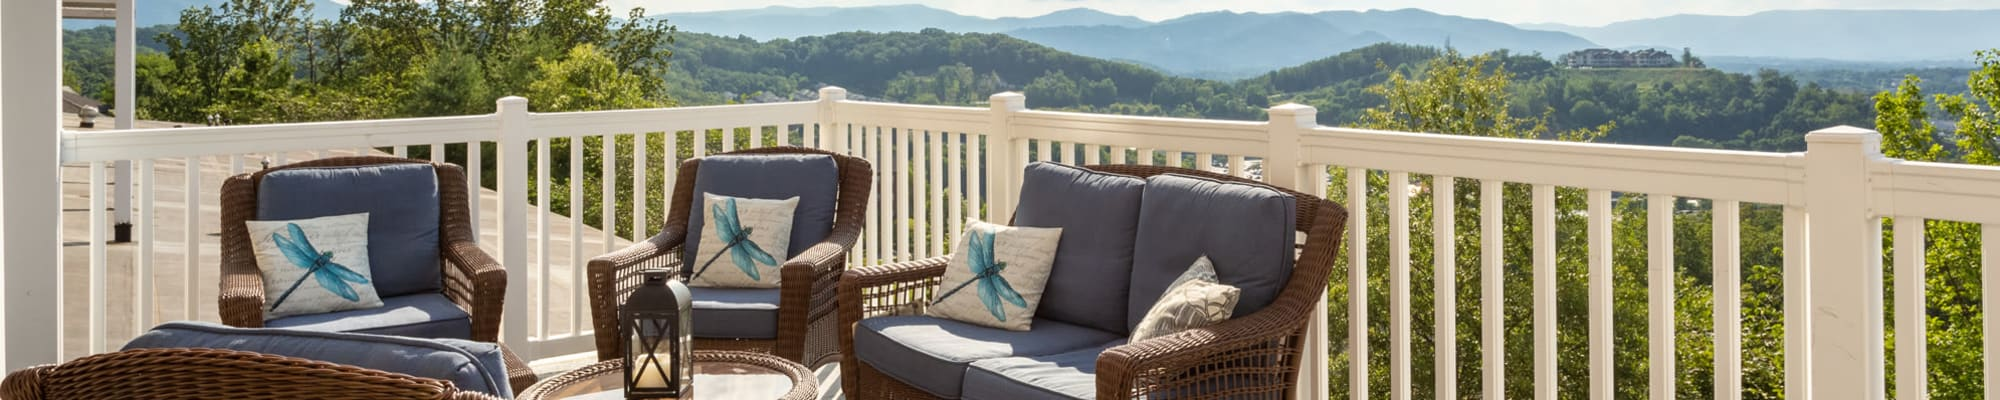 Reviews of The Harmony Collection at Roanoke - Independent Living in Roanoke, Virginia